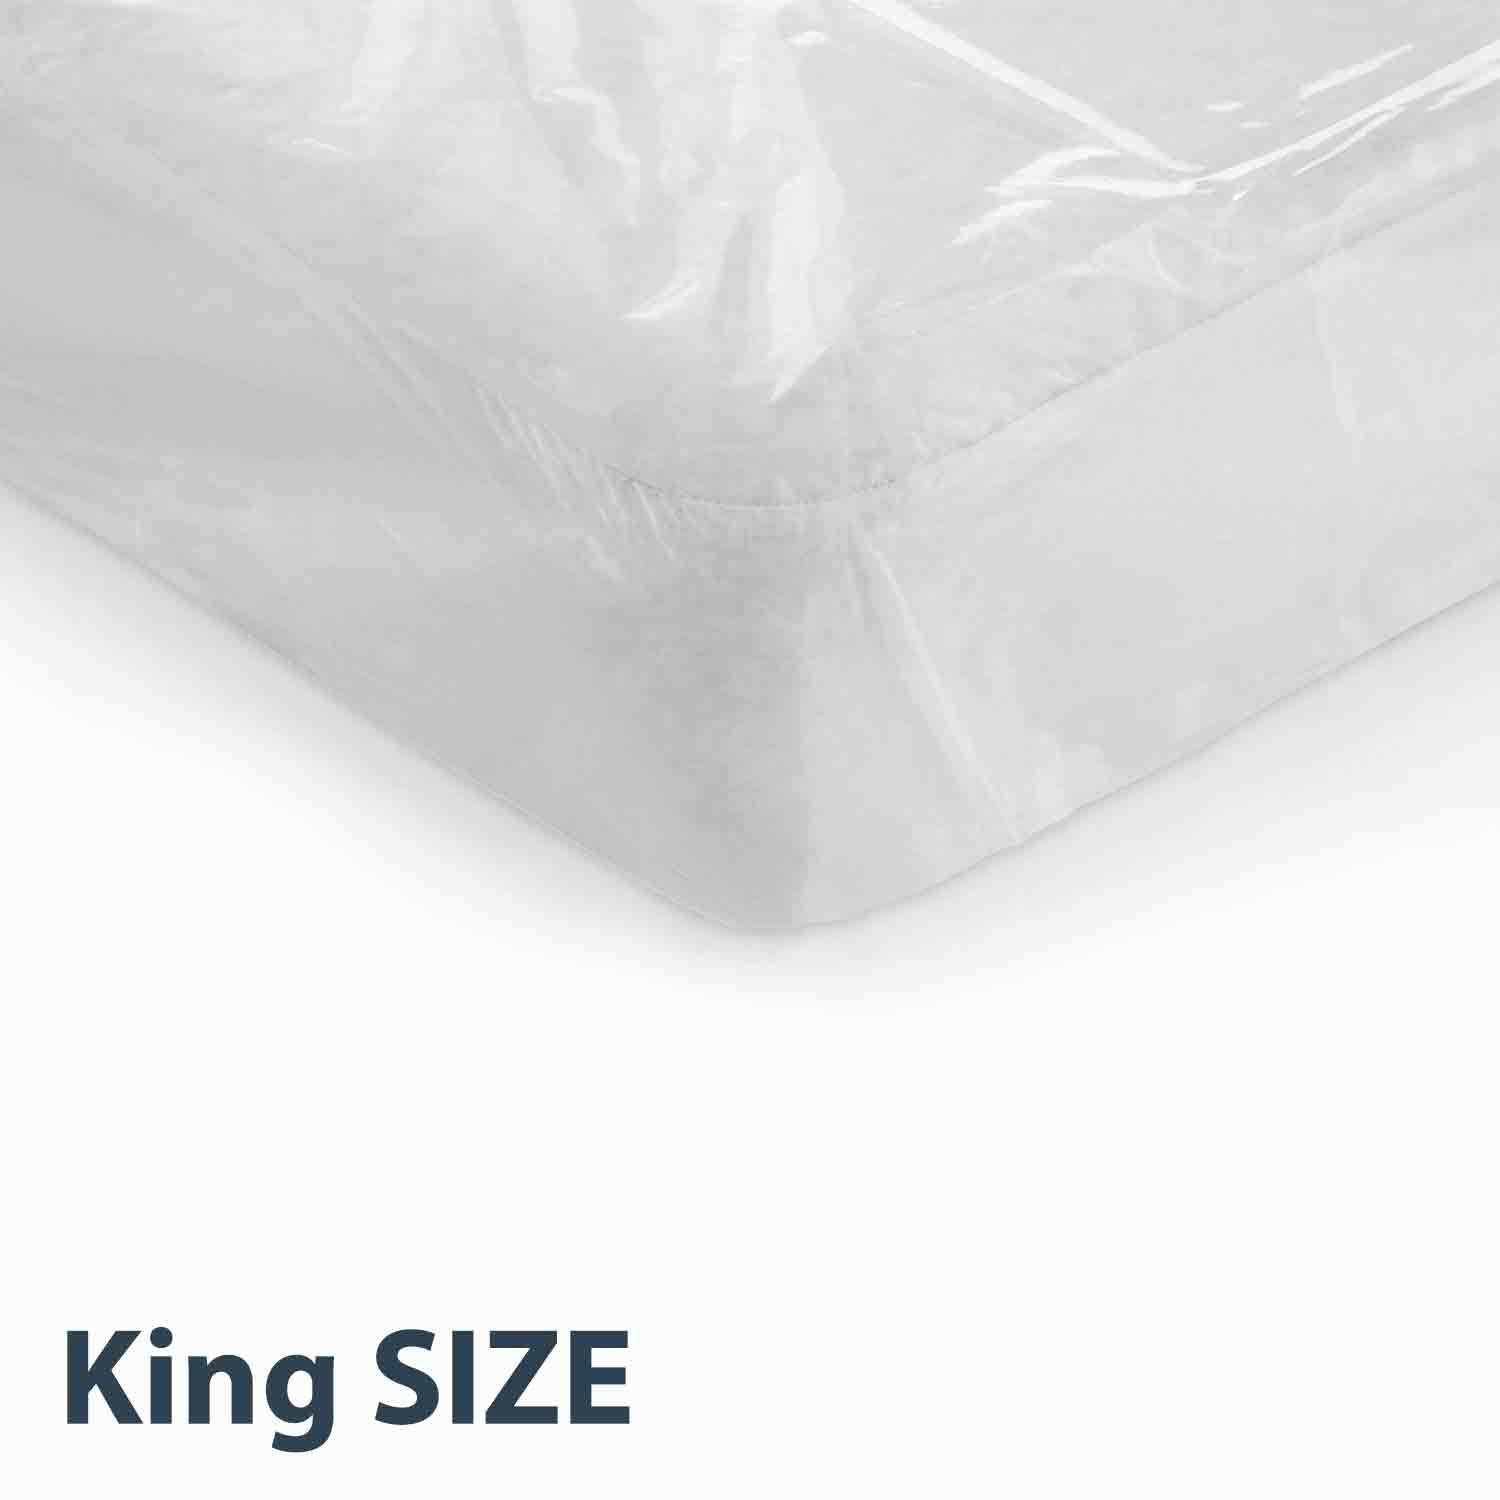 King Size Mattress Bag Cover For Protection During Moving KMBC-1